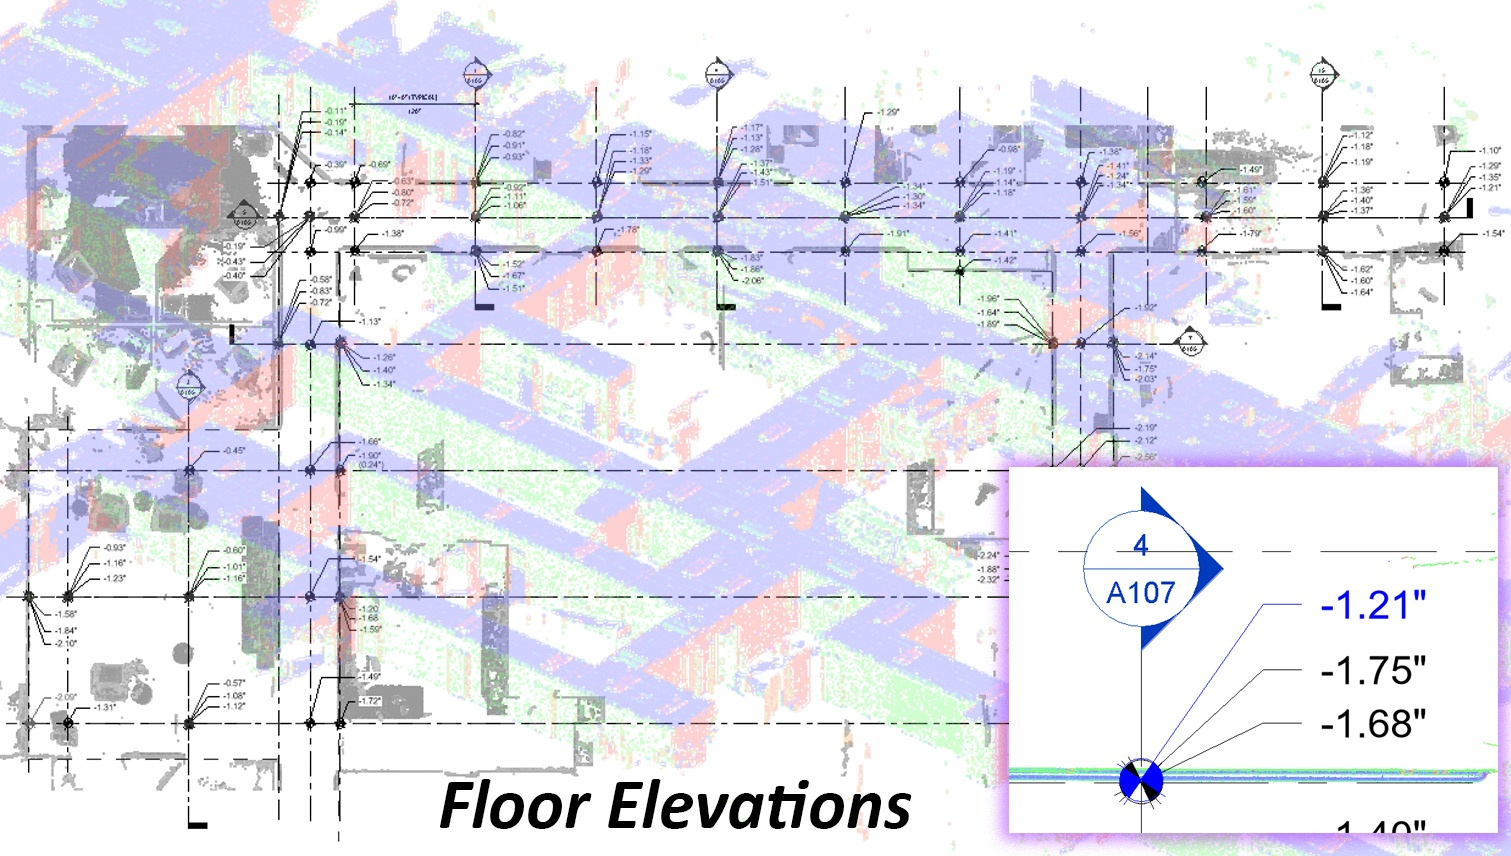 Floor Elevations